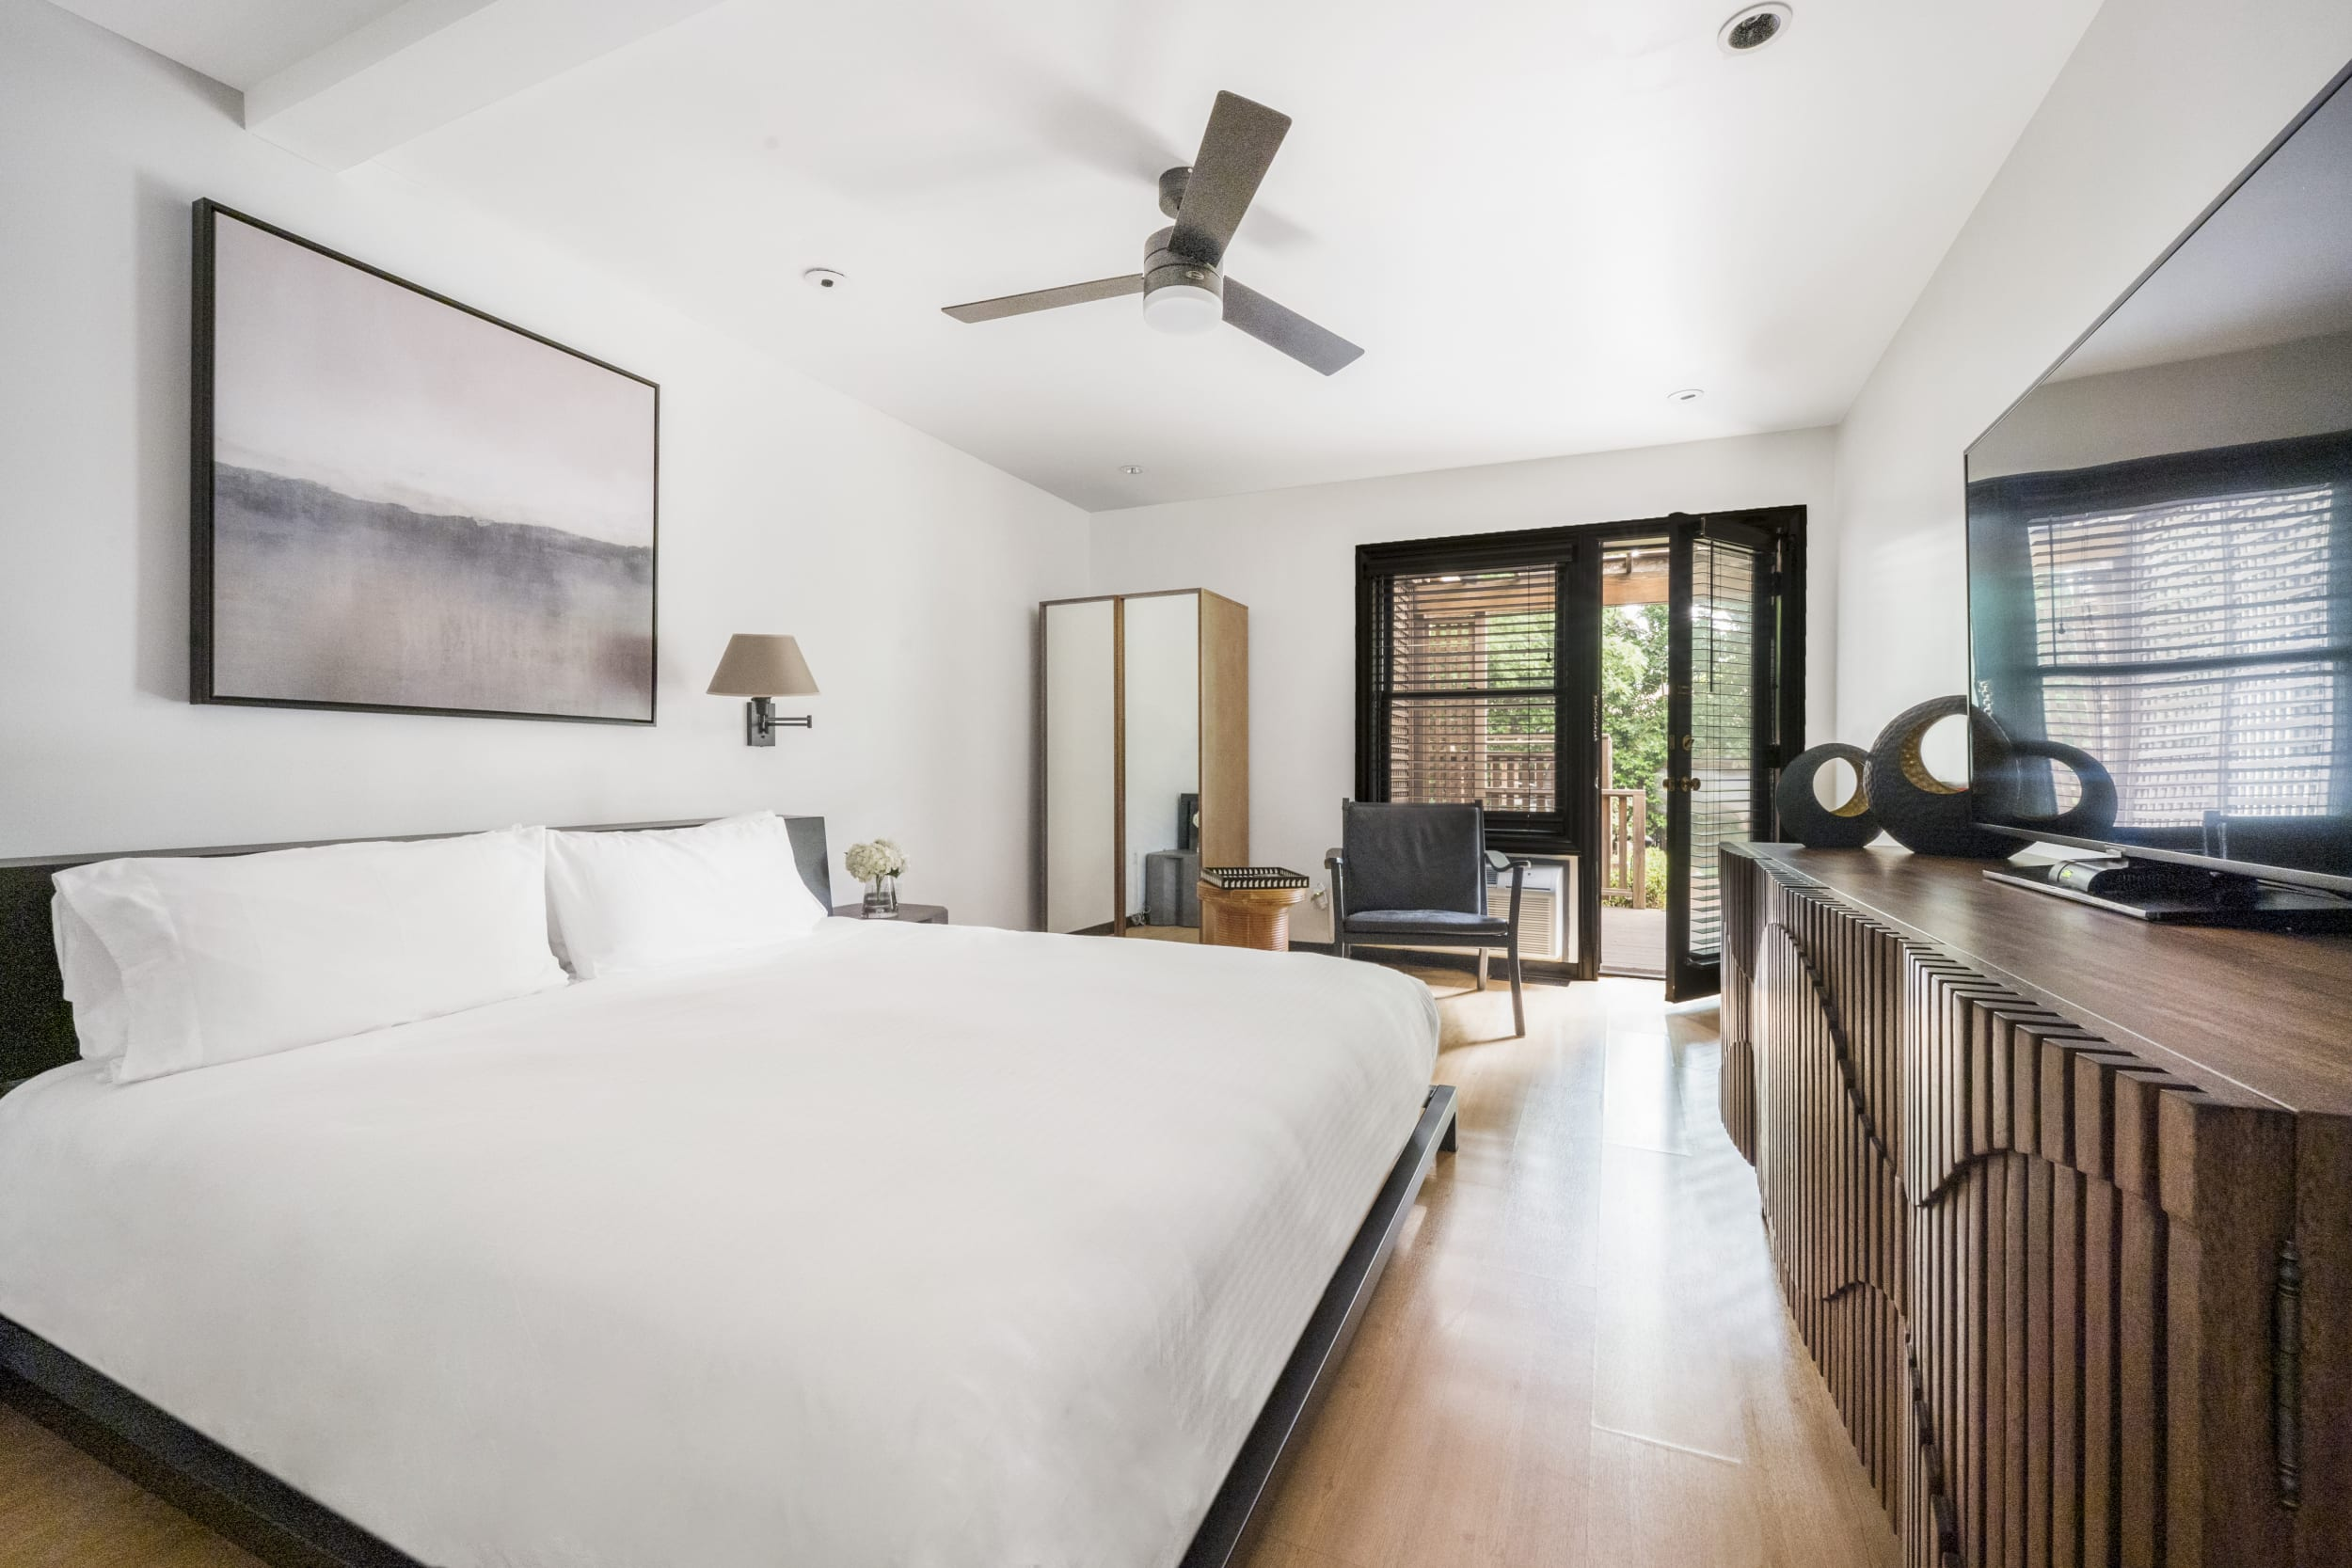 Glen Ellen King Guestrooms | Gaige House + Ryokan